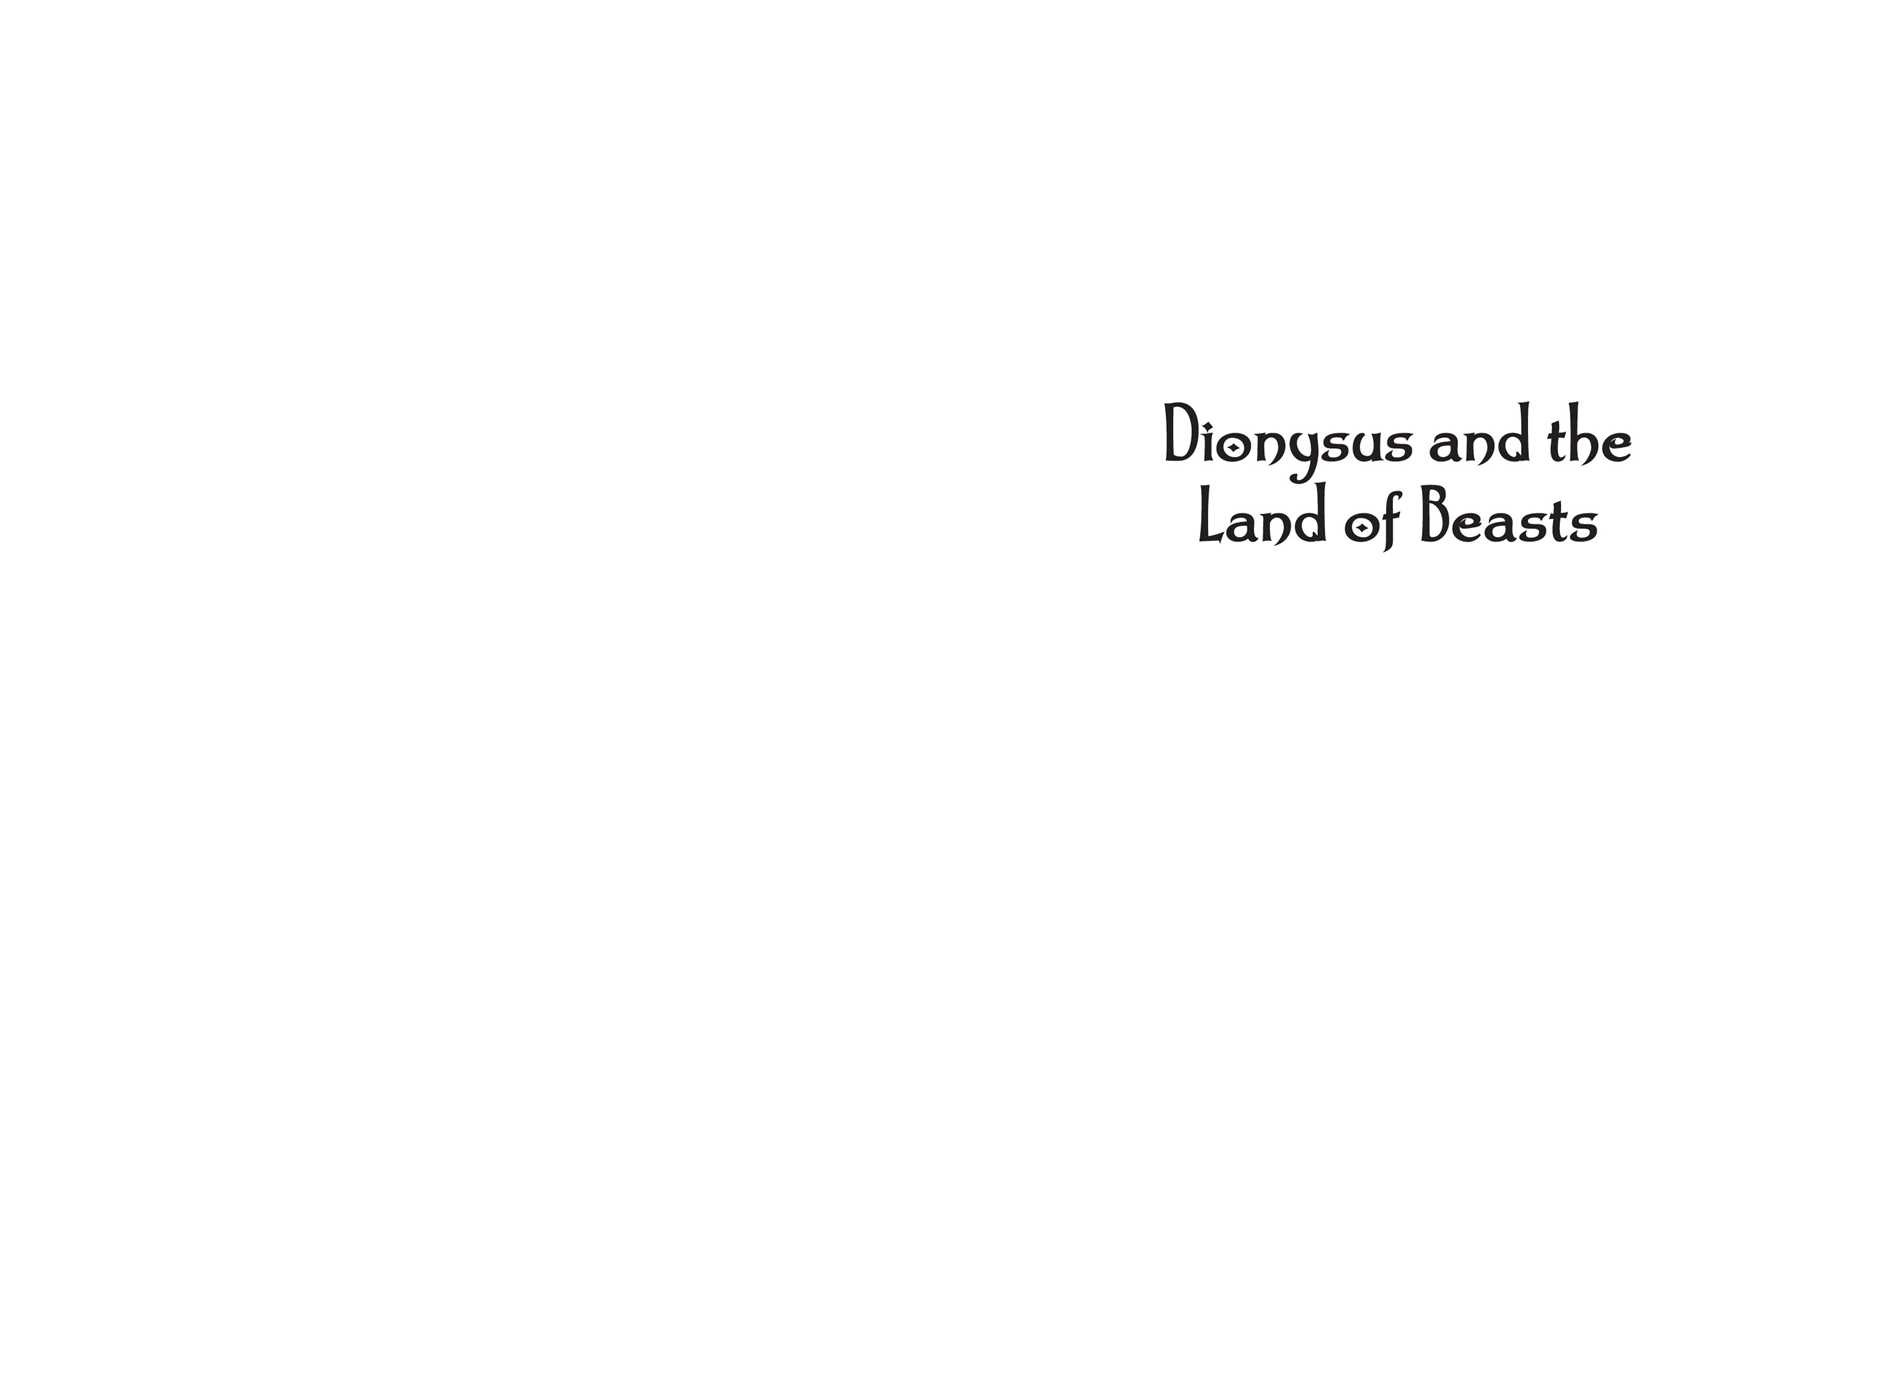 Dionysus and the land of beasts 9781481488341.in01